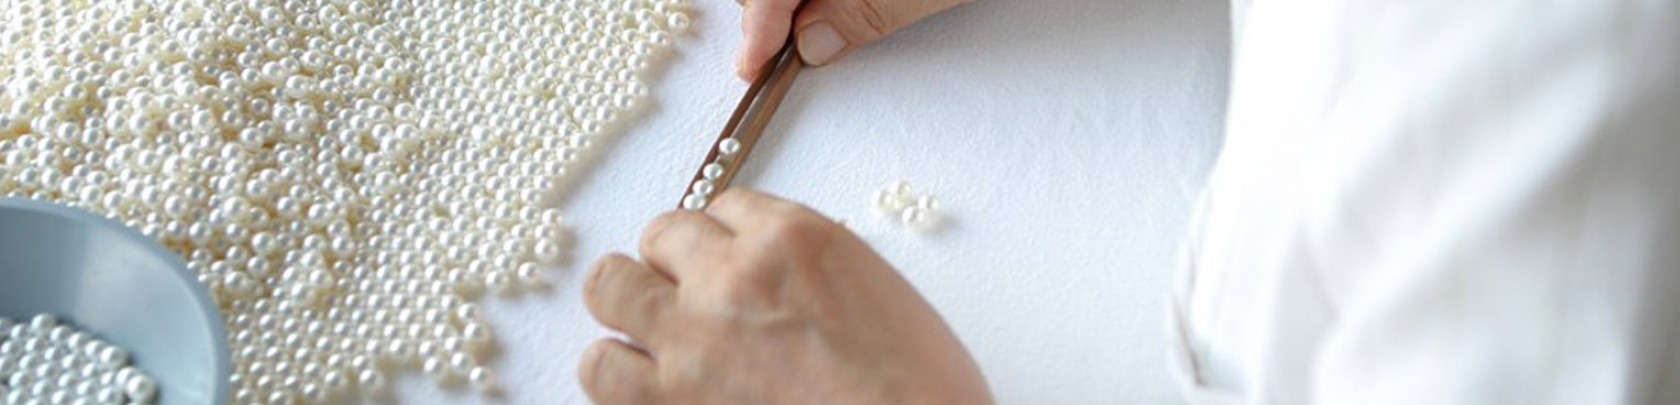 Qualities of Pearls - Pearl Grading